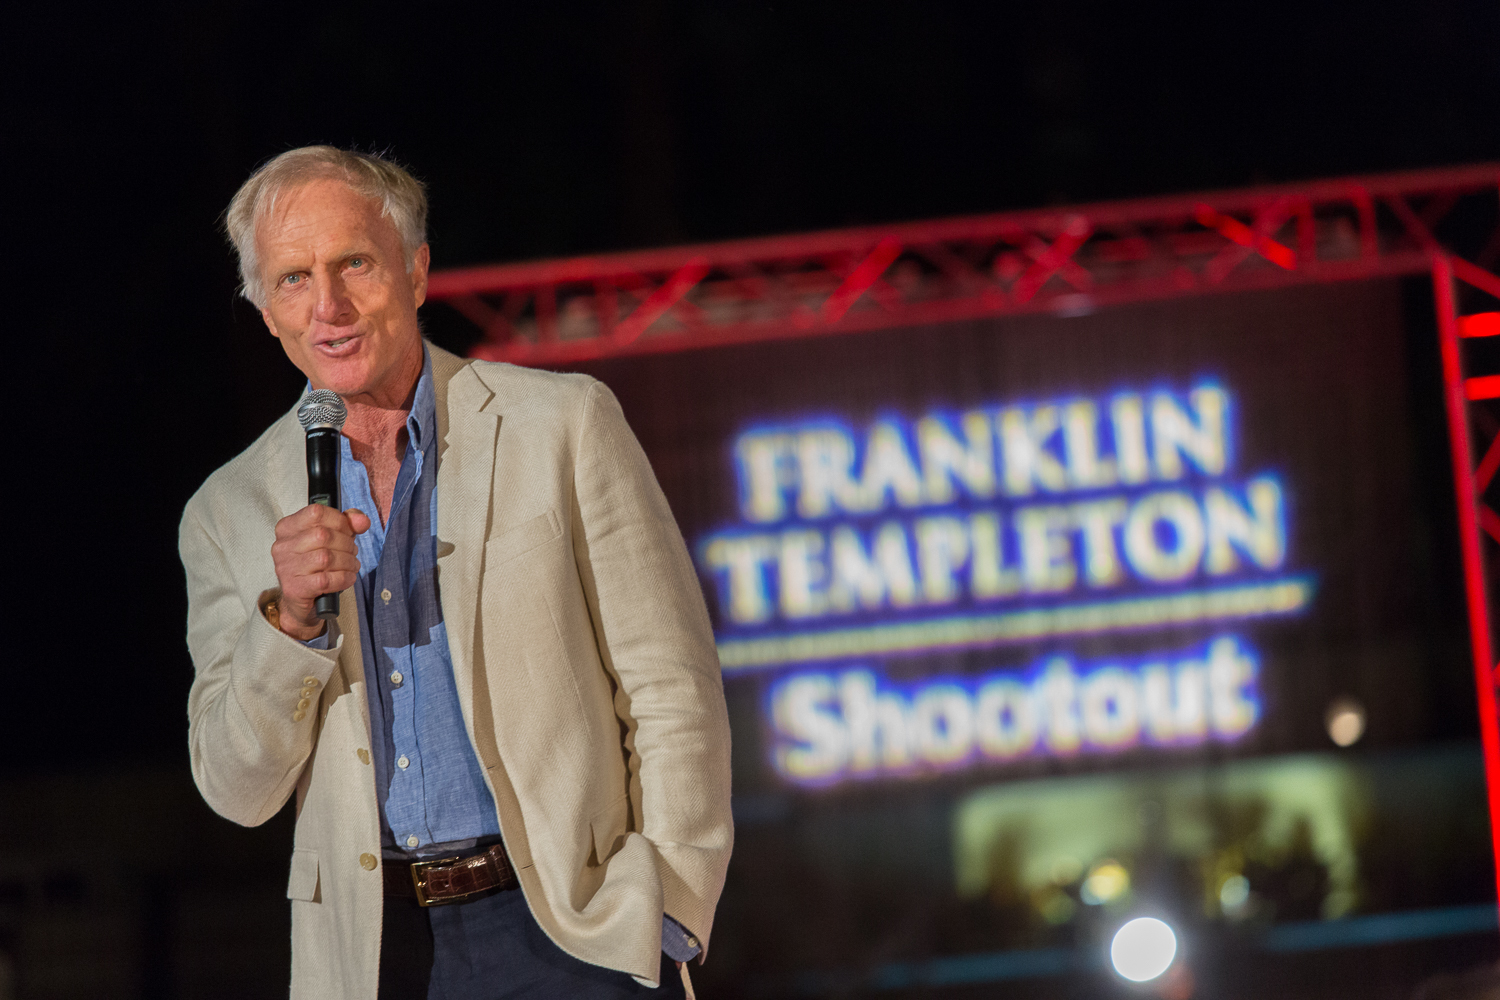 franklin templation - charitybuzz meet greg norman when you attend the franklin